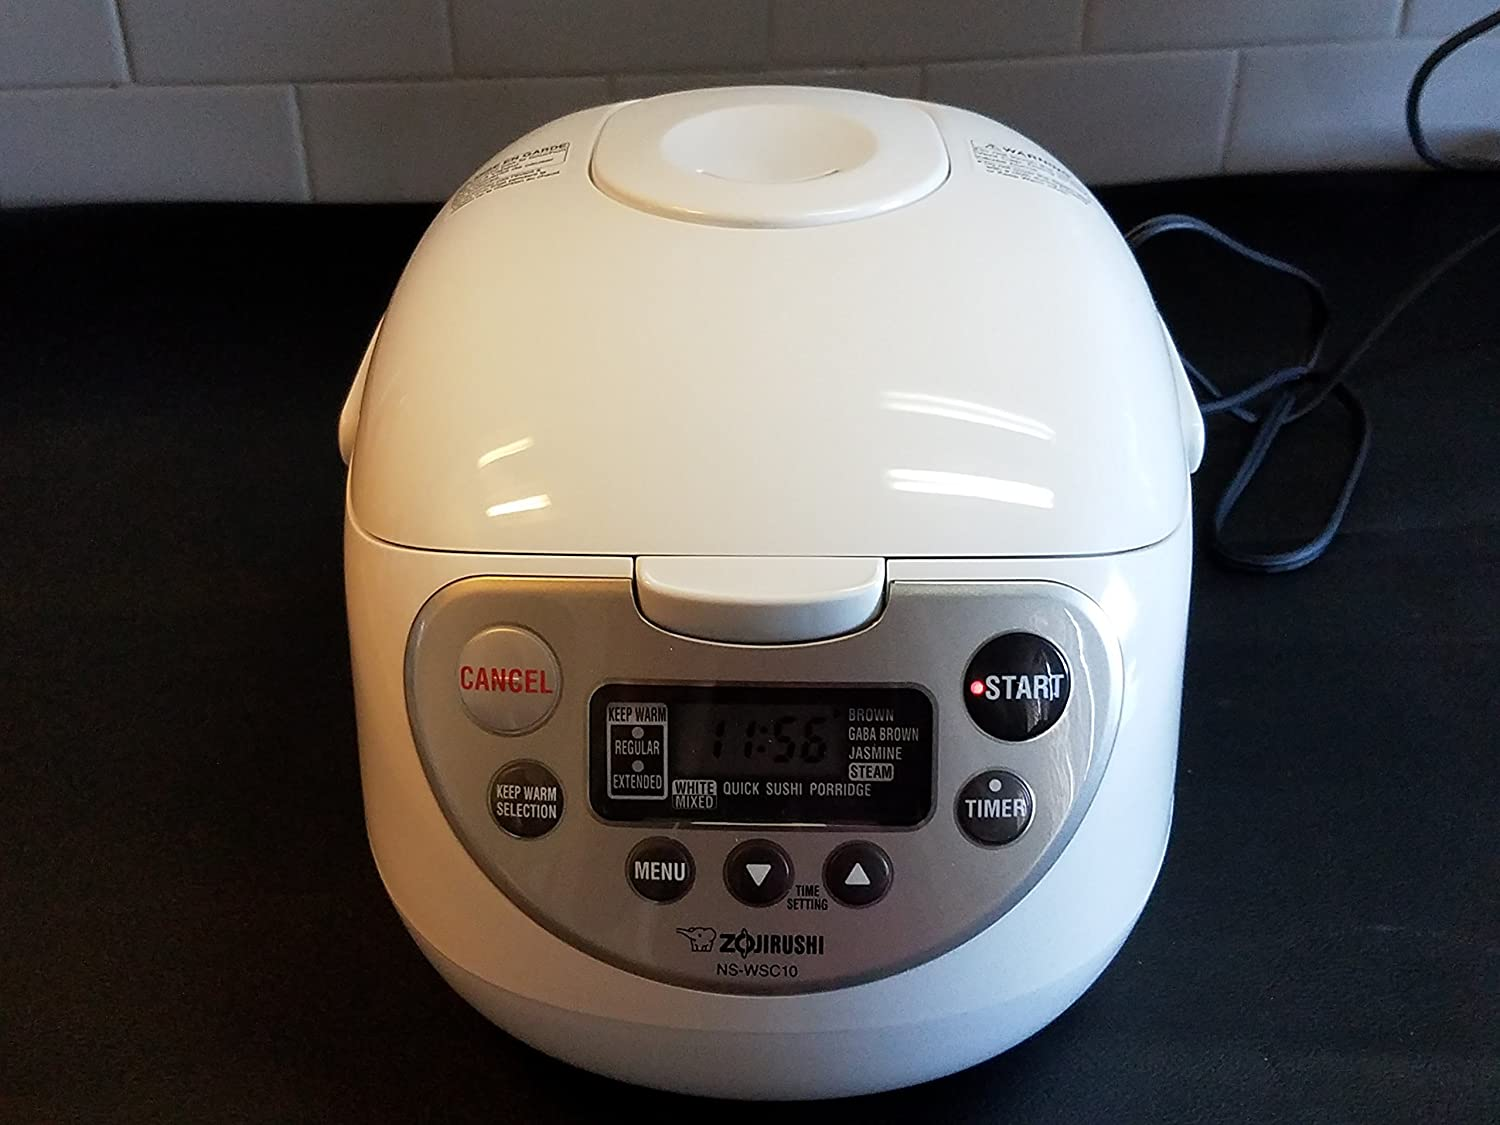 Zojirushi Micom Rice Cooker and Warmer, up to 5.5 Cups Uncooked